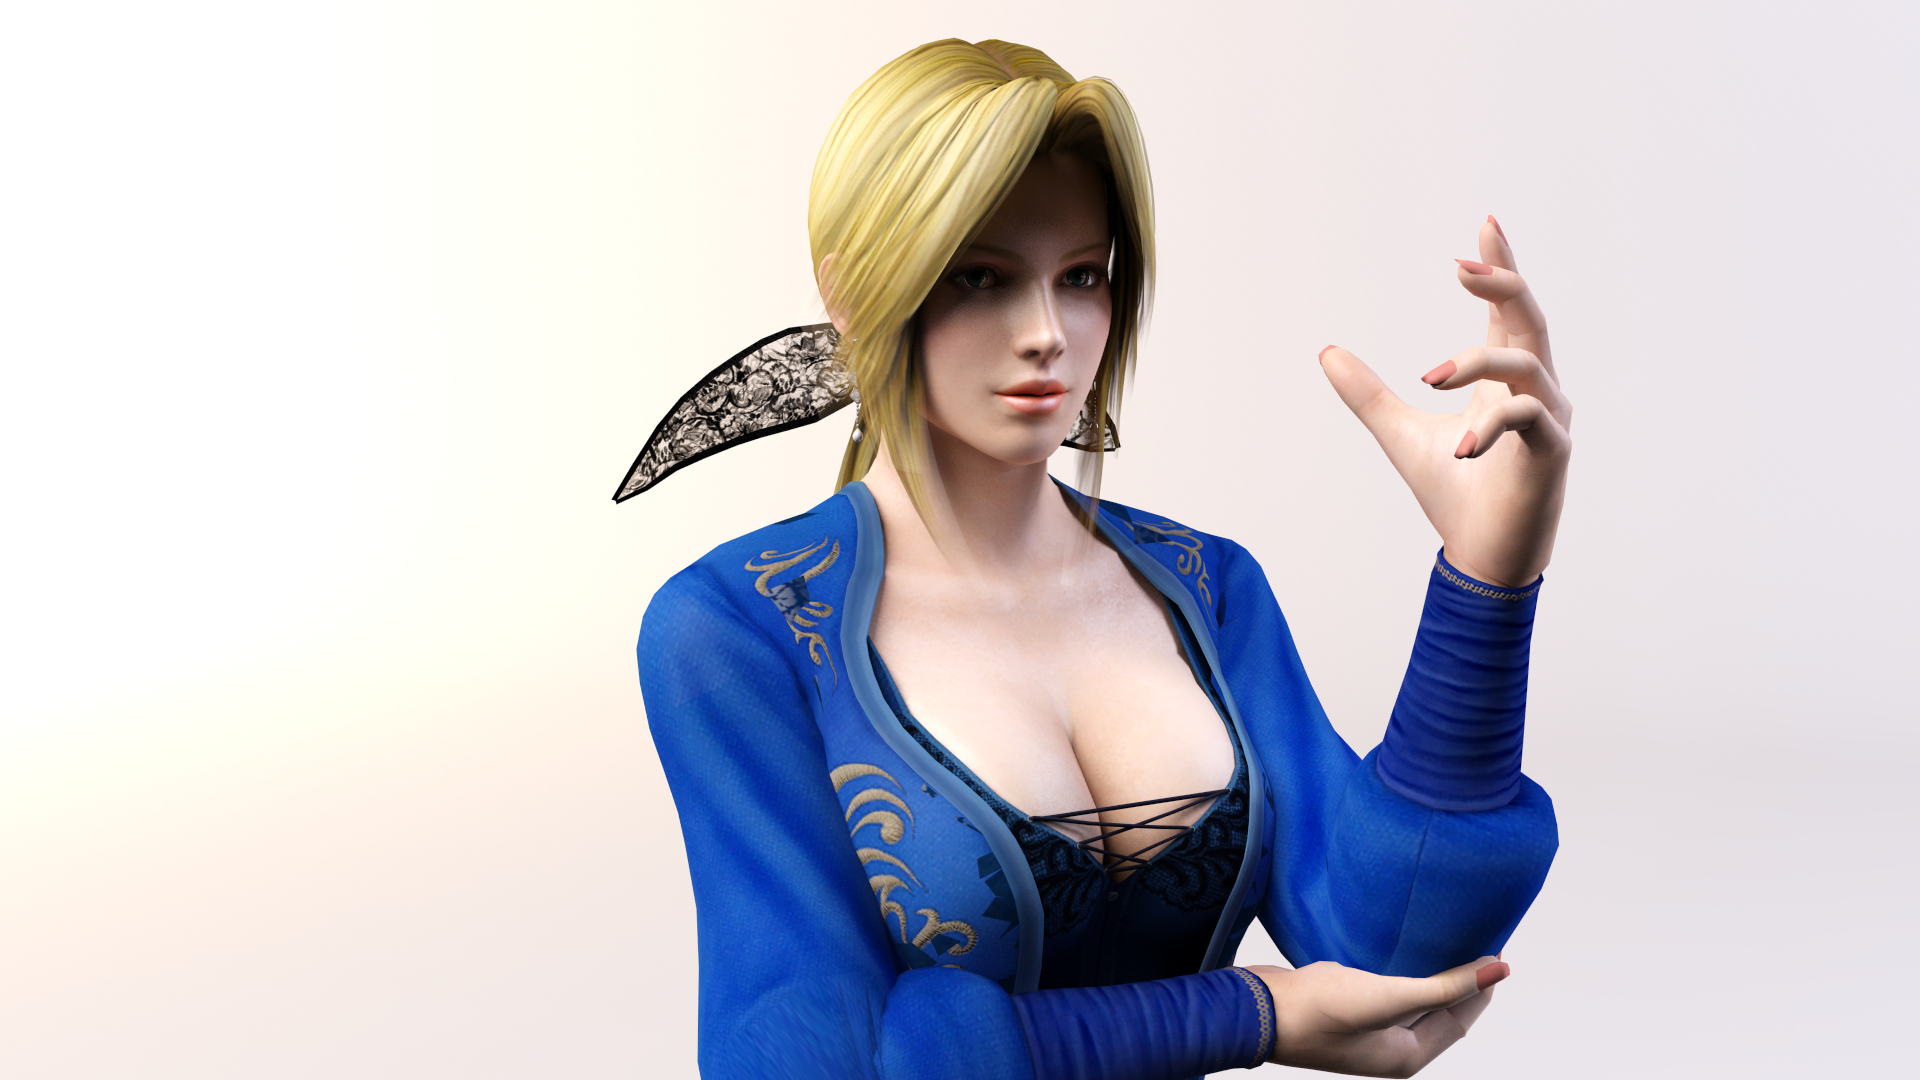 3DS Max - Helena Render 2 by SilverMoonCrystal